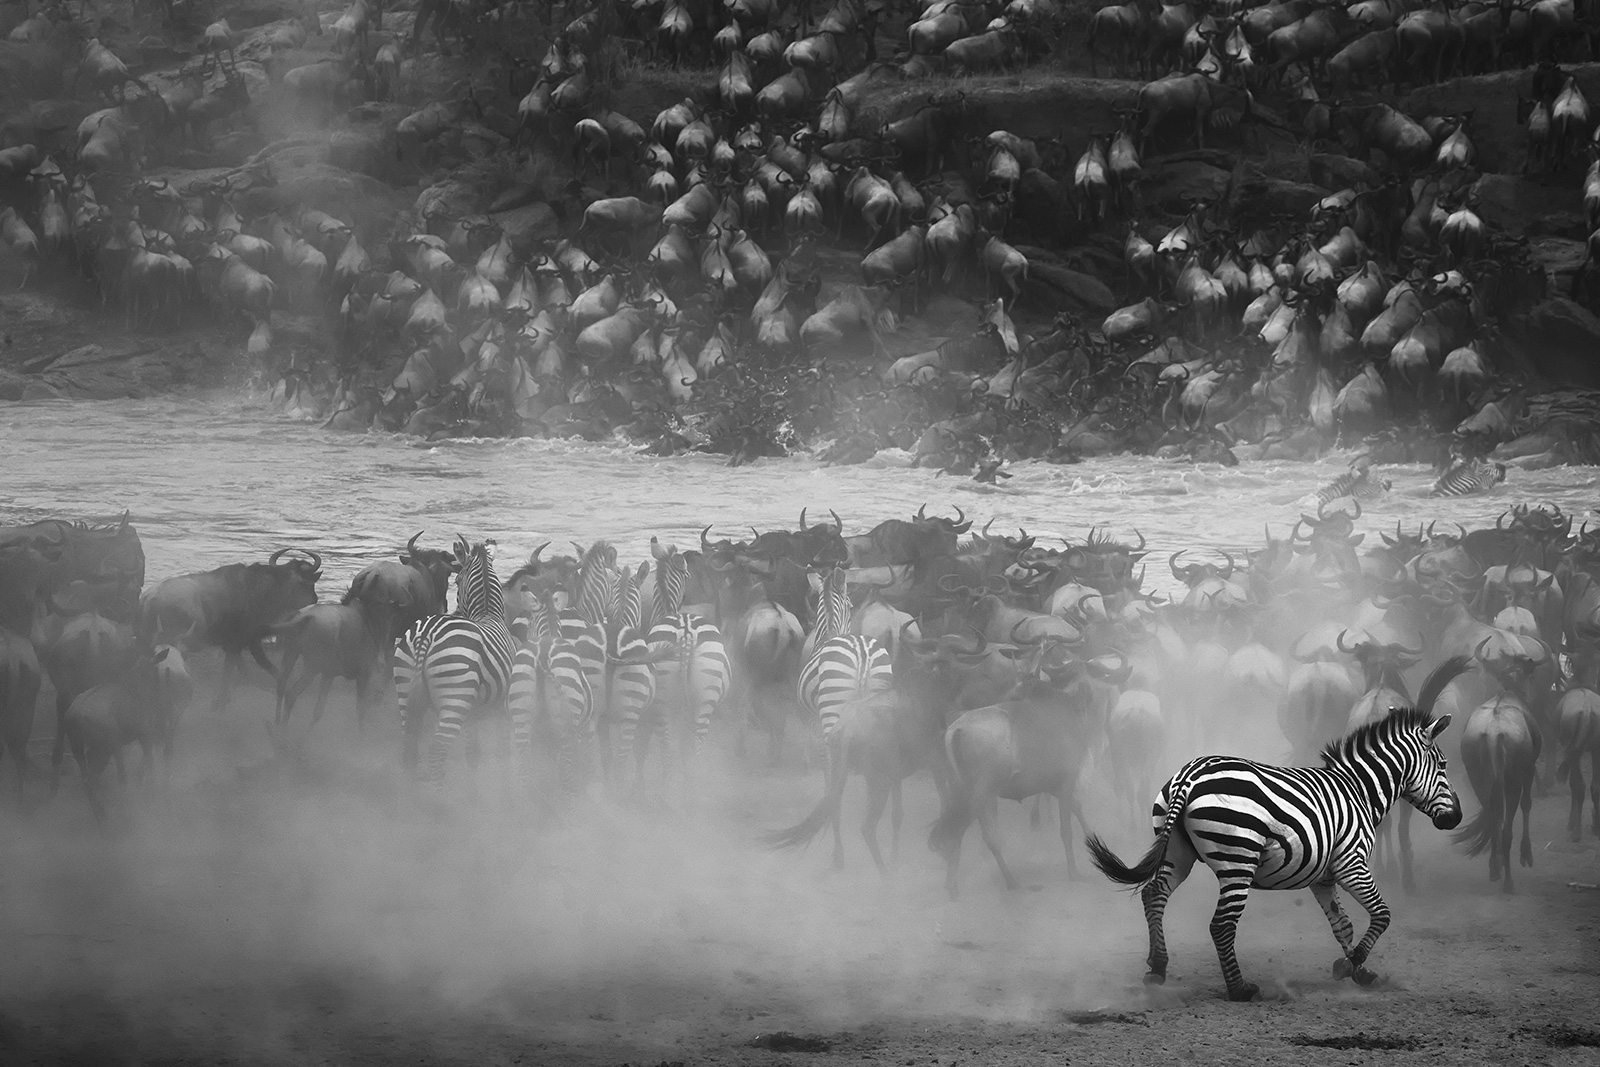 """The great migration"" in Maasai Mara National Park, Kenya ©Panos Laskarakis"